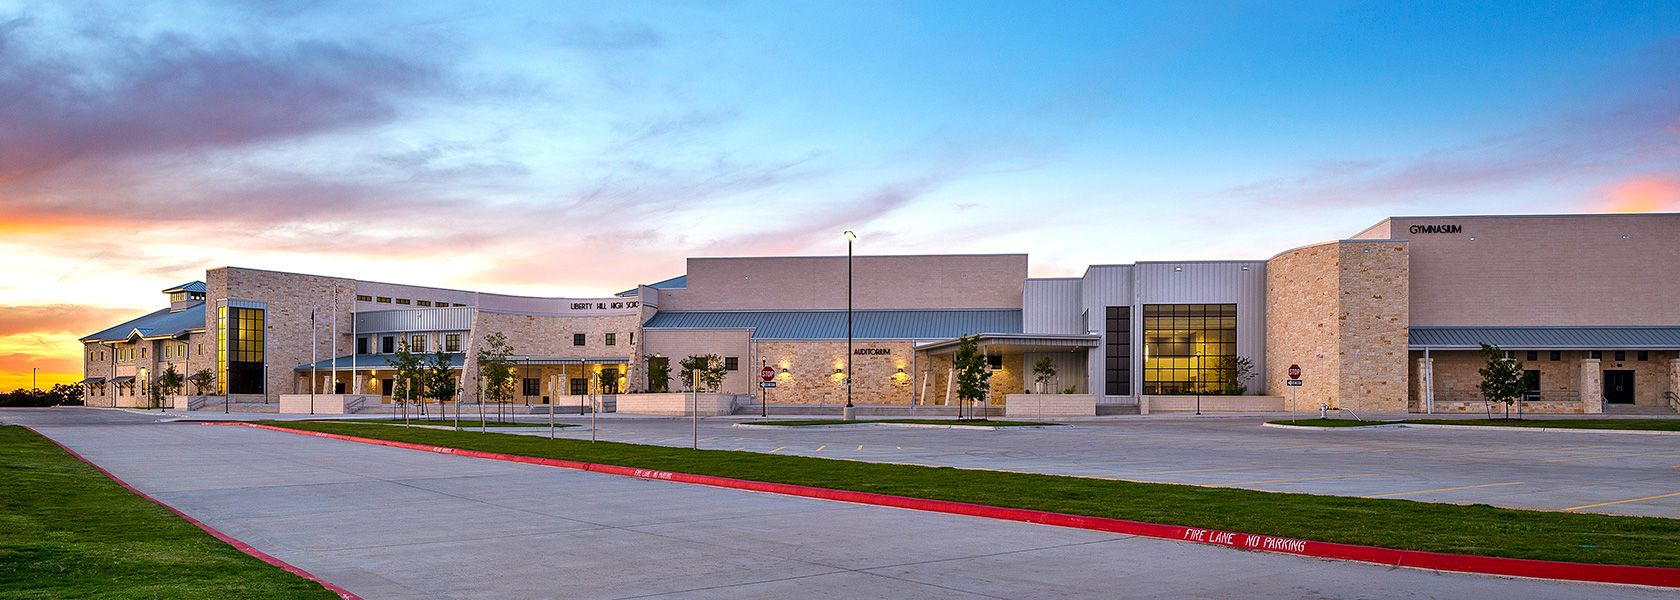 Superieur Liberty Hill High School. Designed By Huckabee, Inc. Architects.